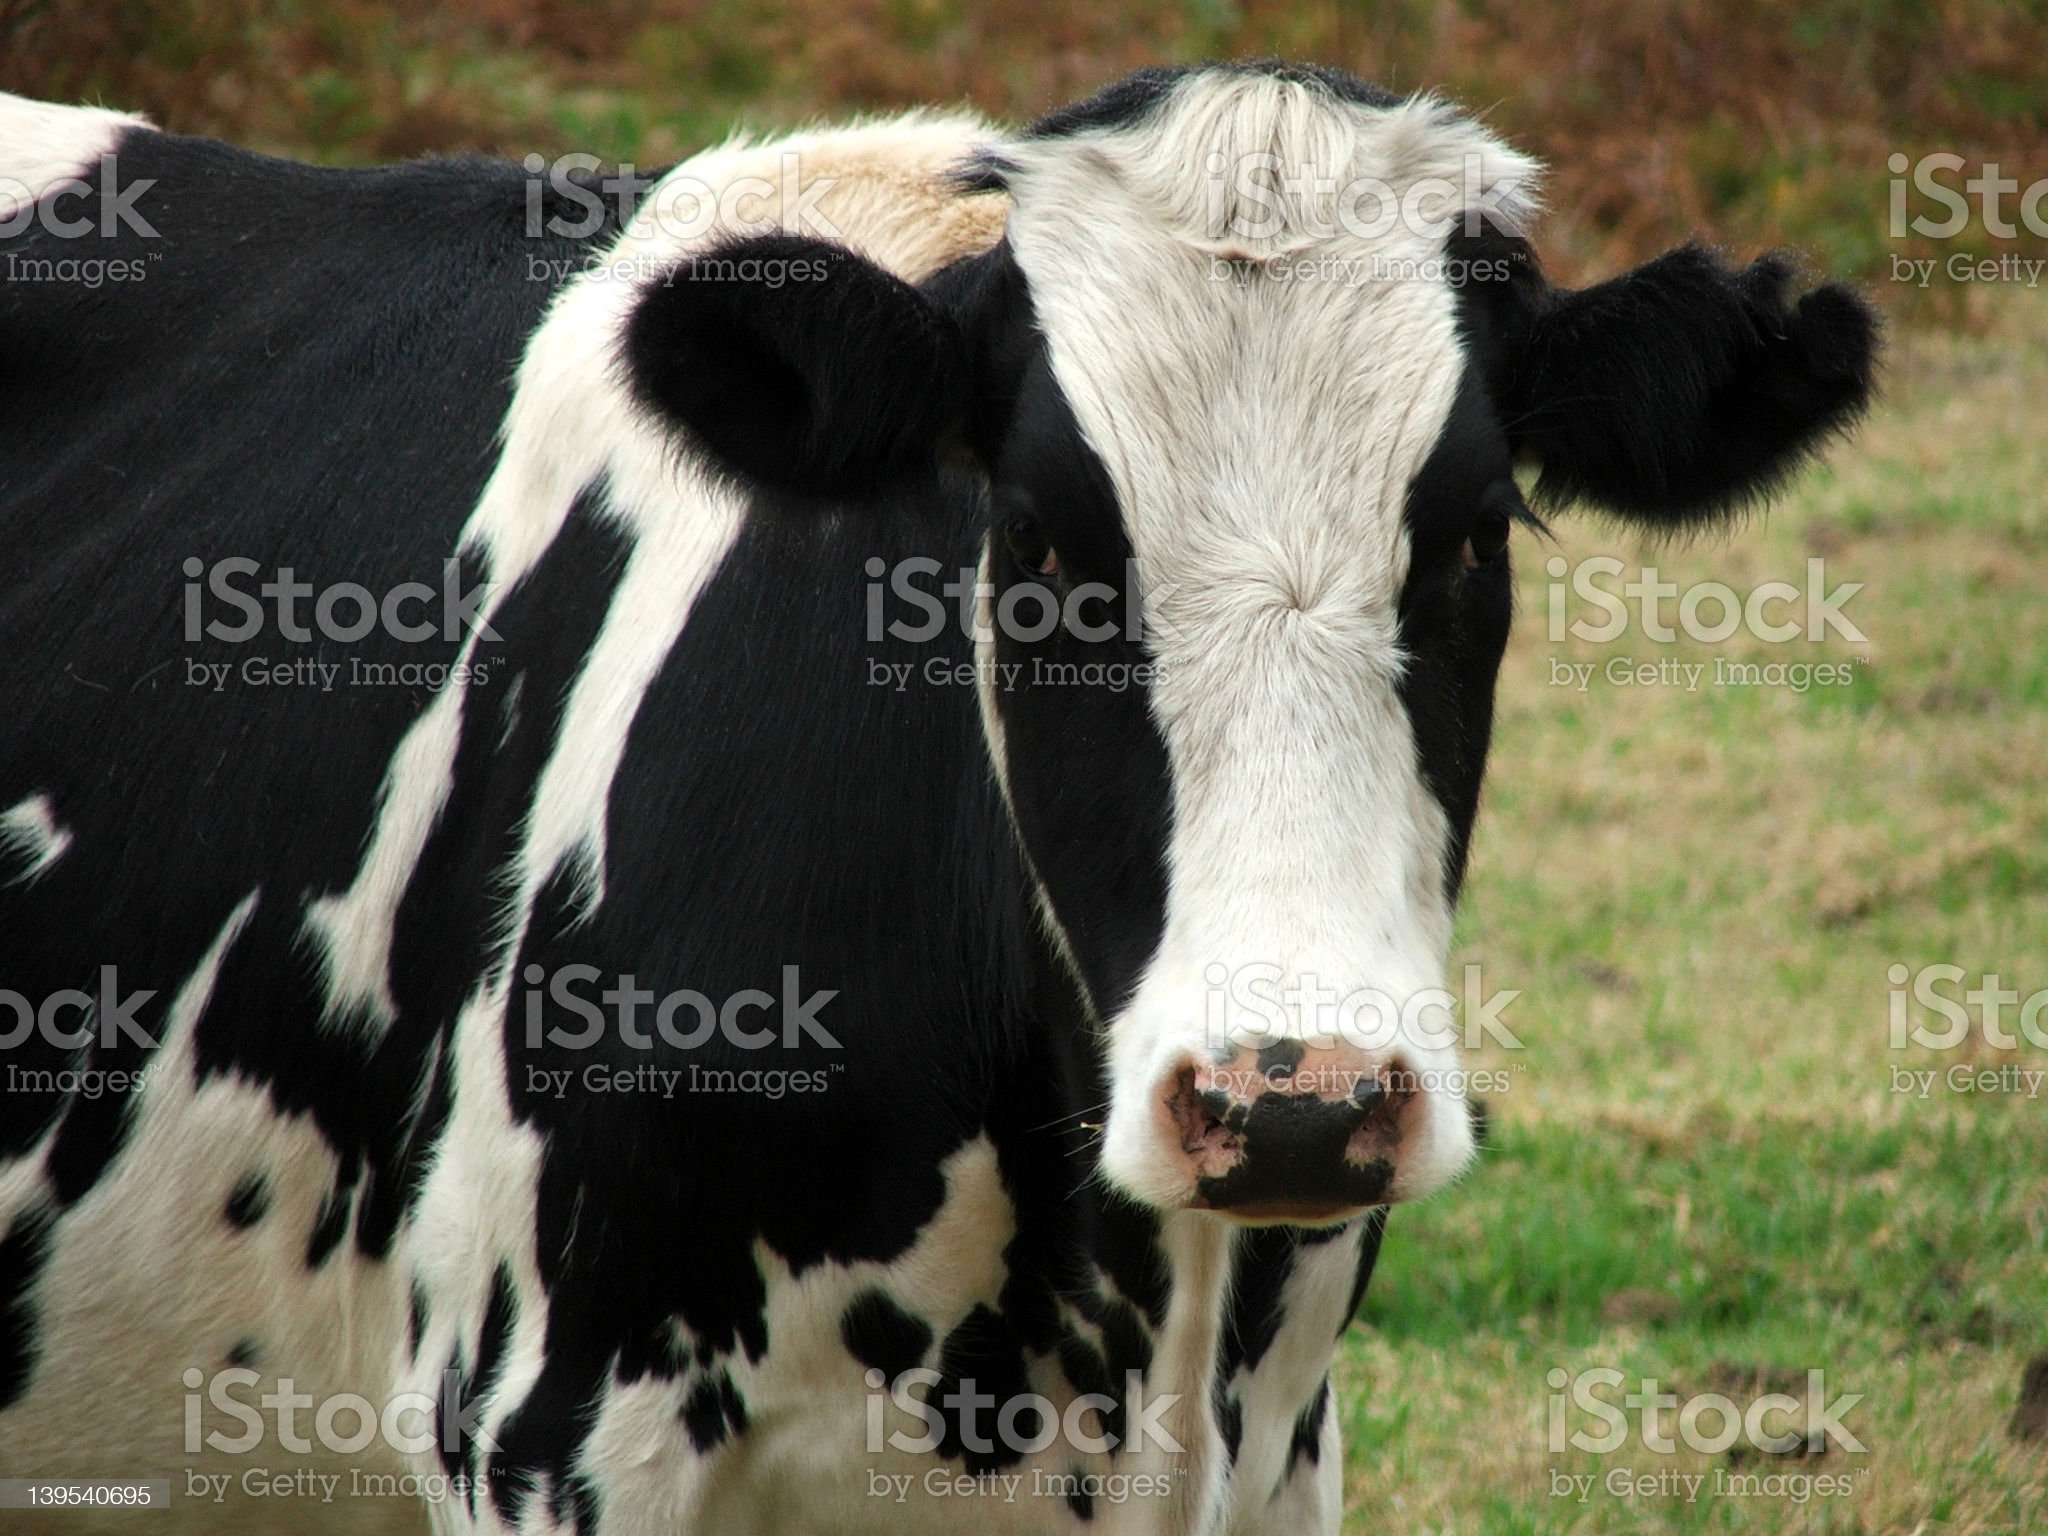 Animal - cow look at you royalty-free stock photo